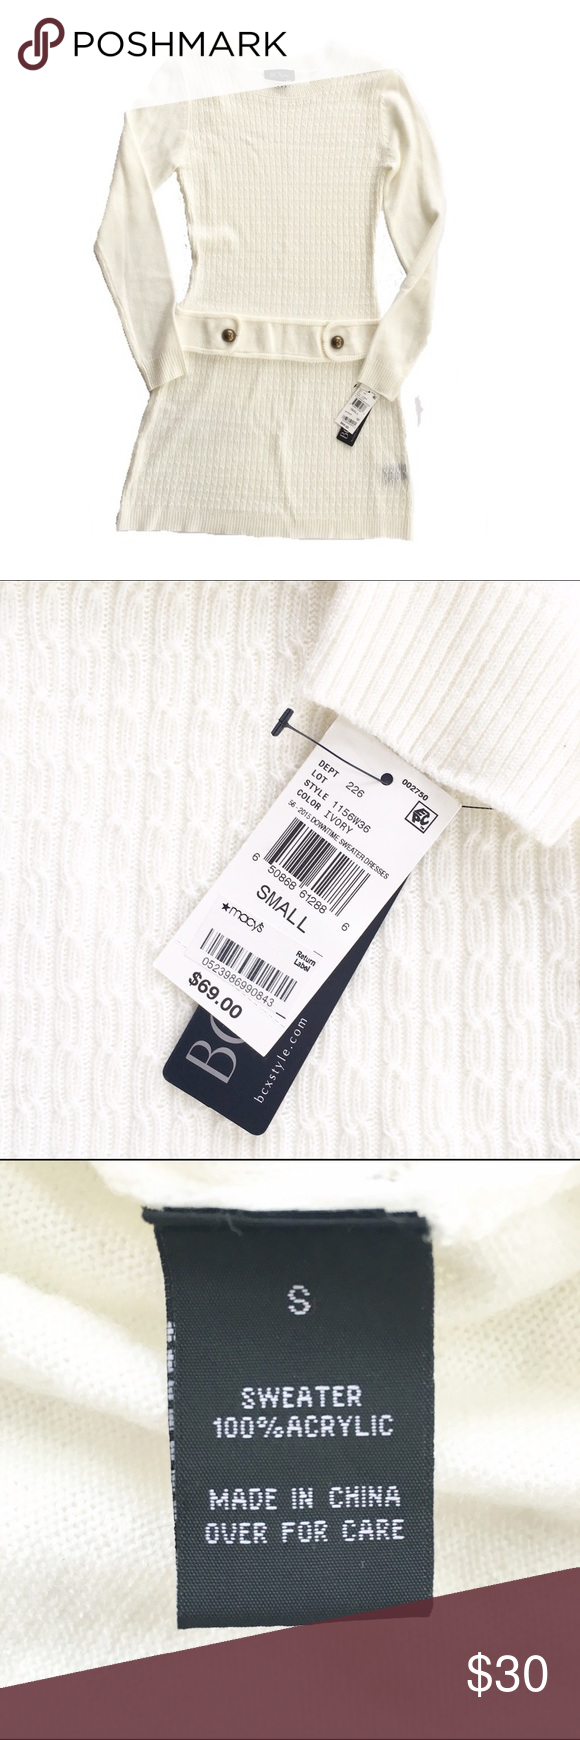 5a7357e7ee3 NWT BCX sweater dress Brand new with tags! Of white  cream sweater dress  from BCX dress